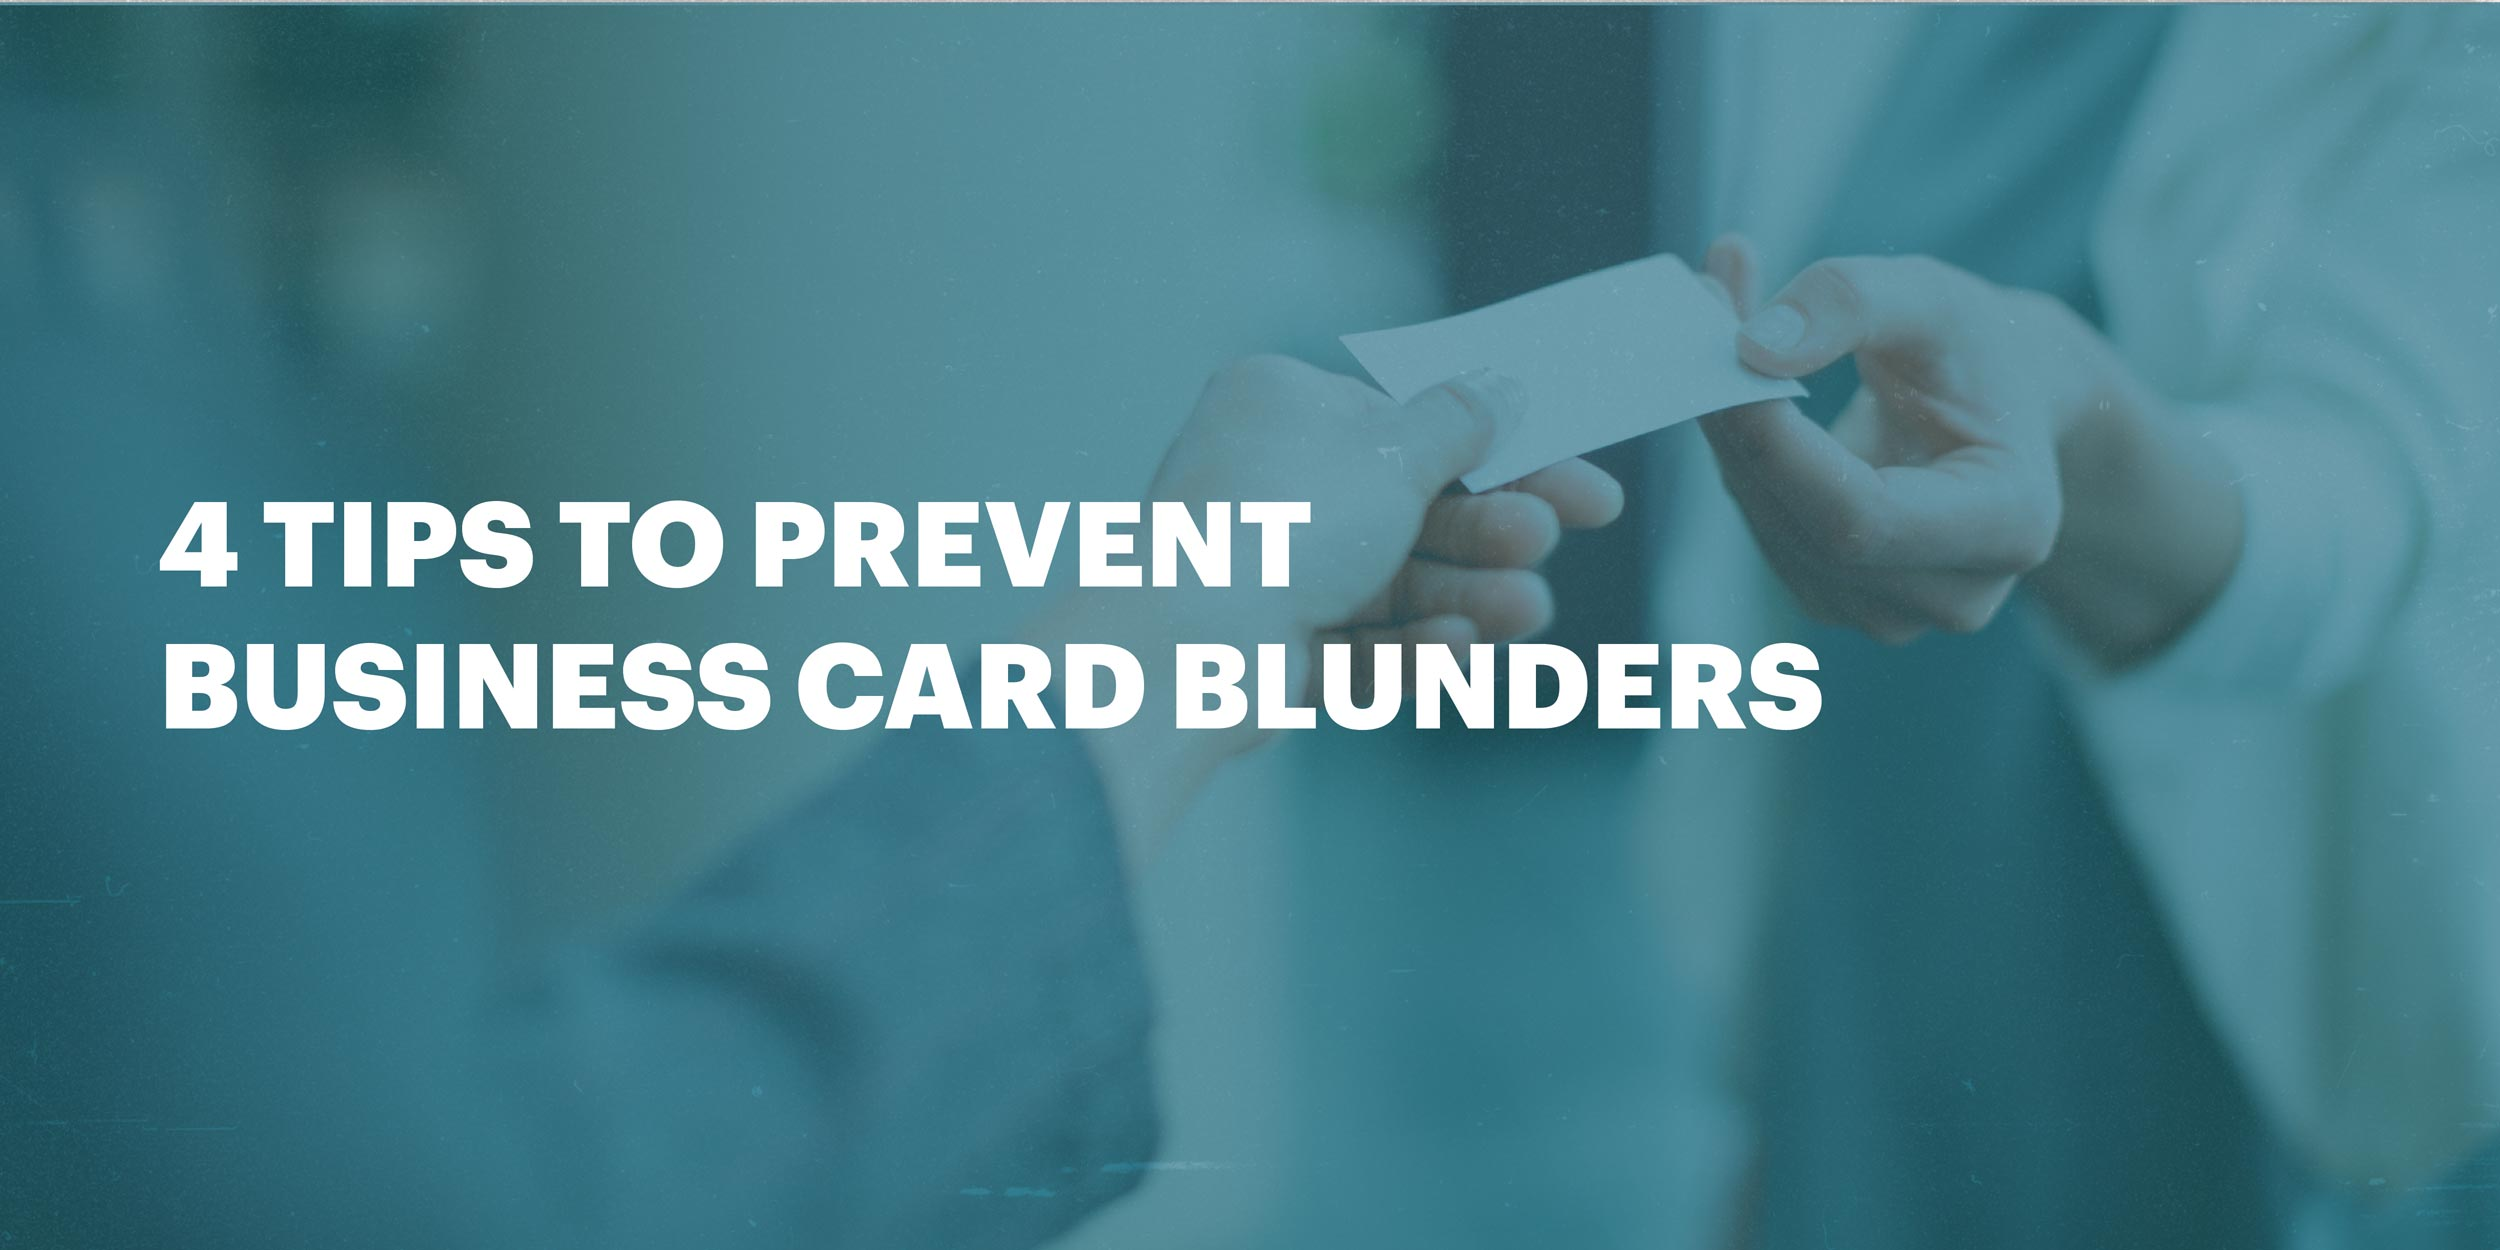 4 Tips to Prevent Business Card Blunders | Lucidpress